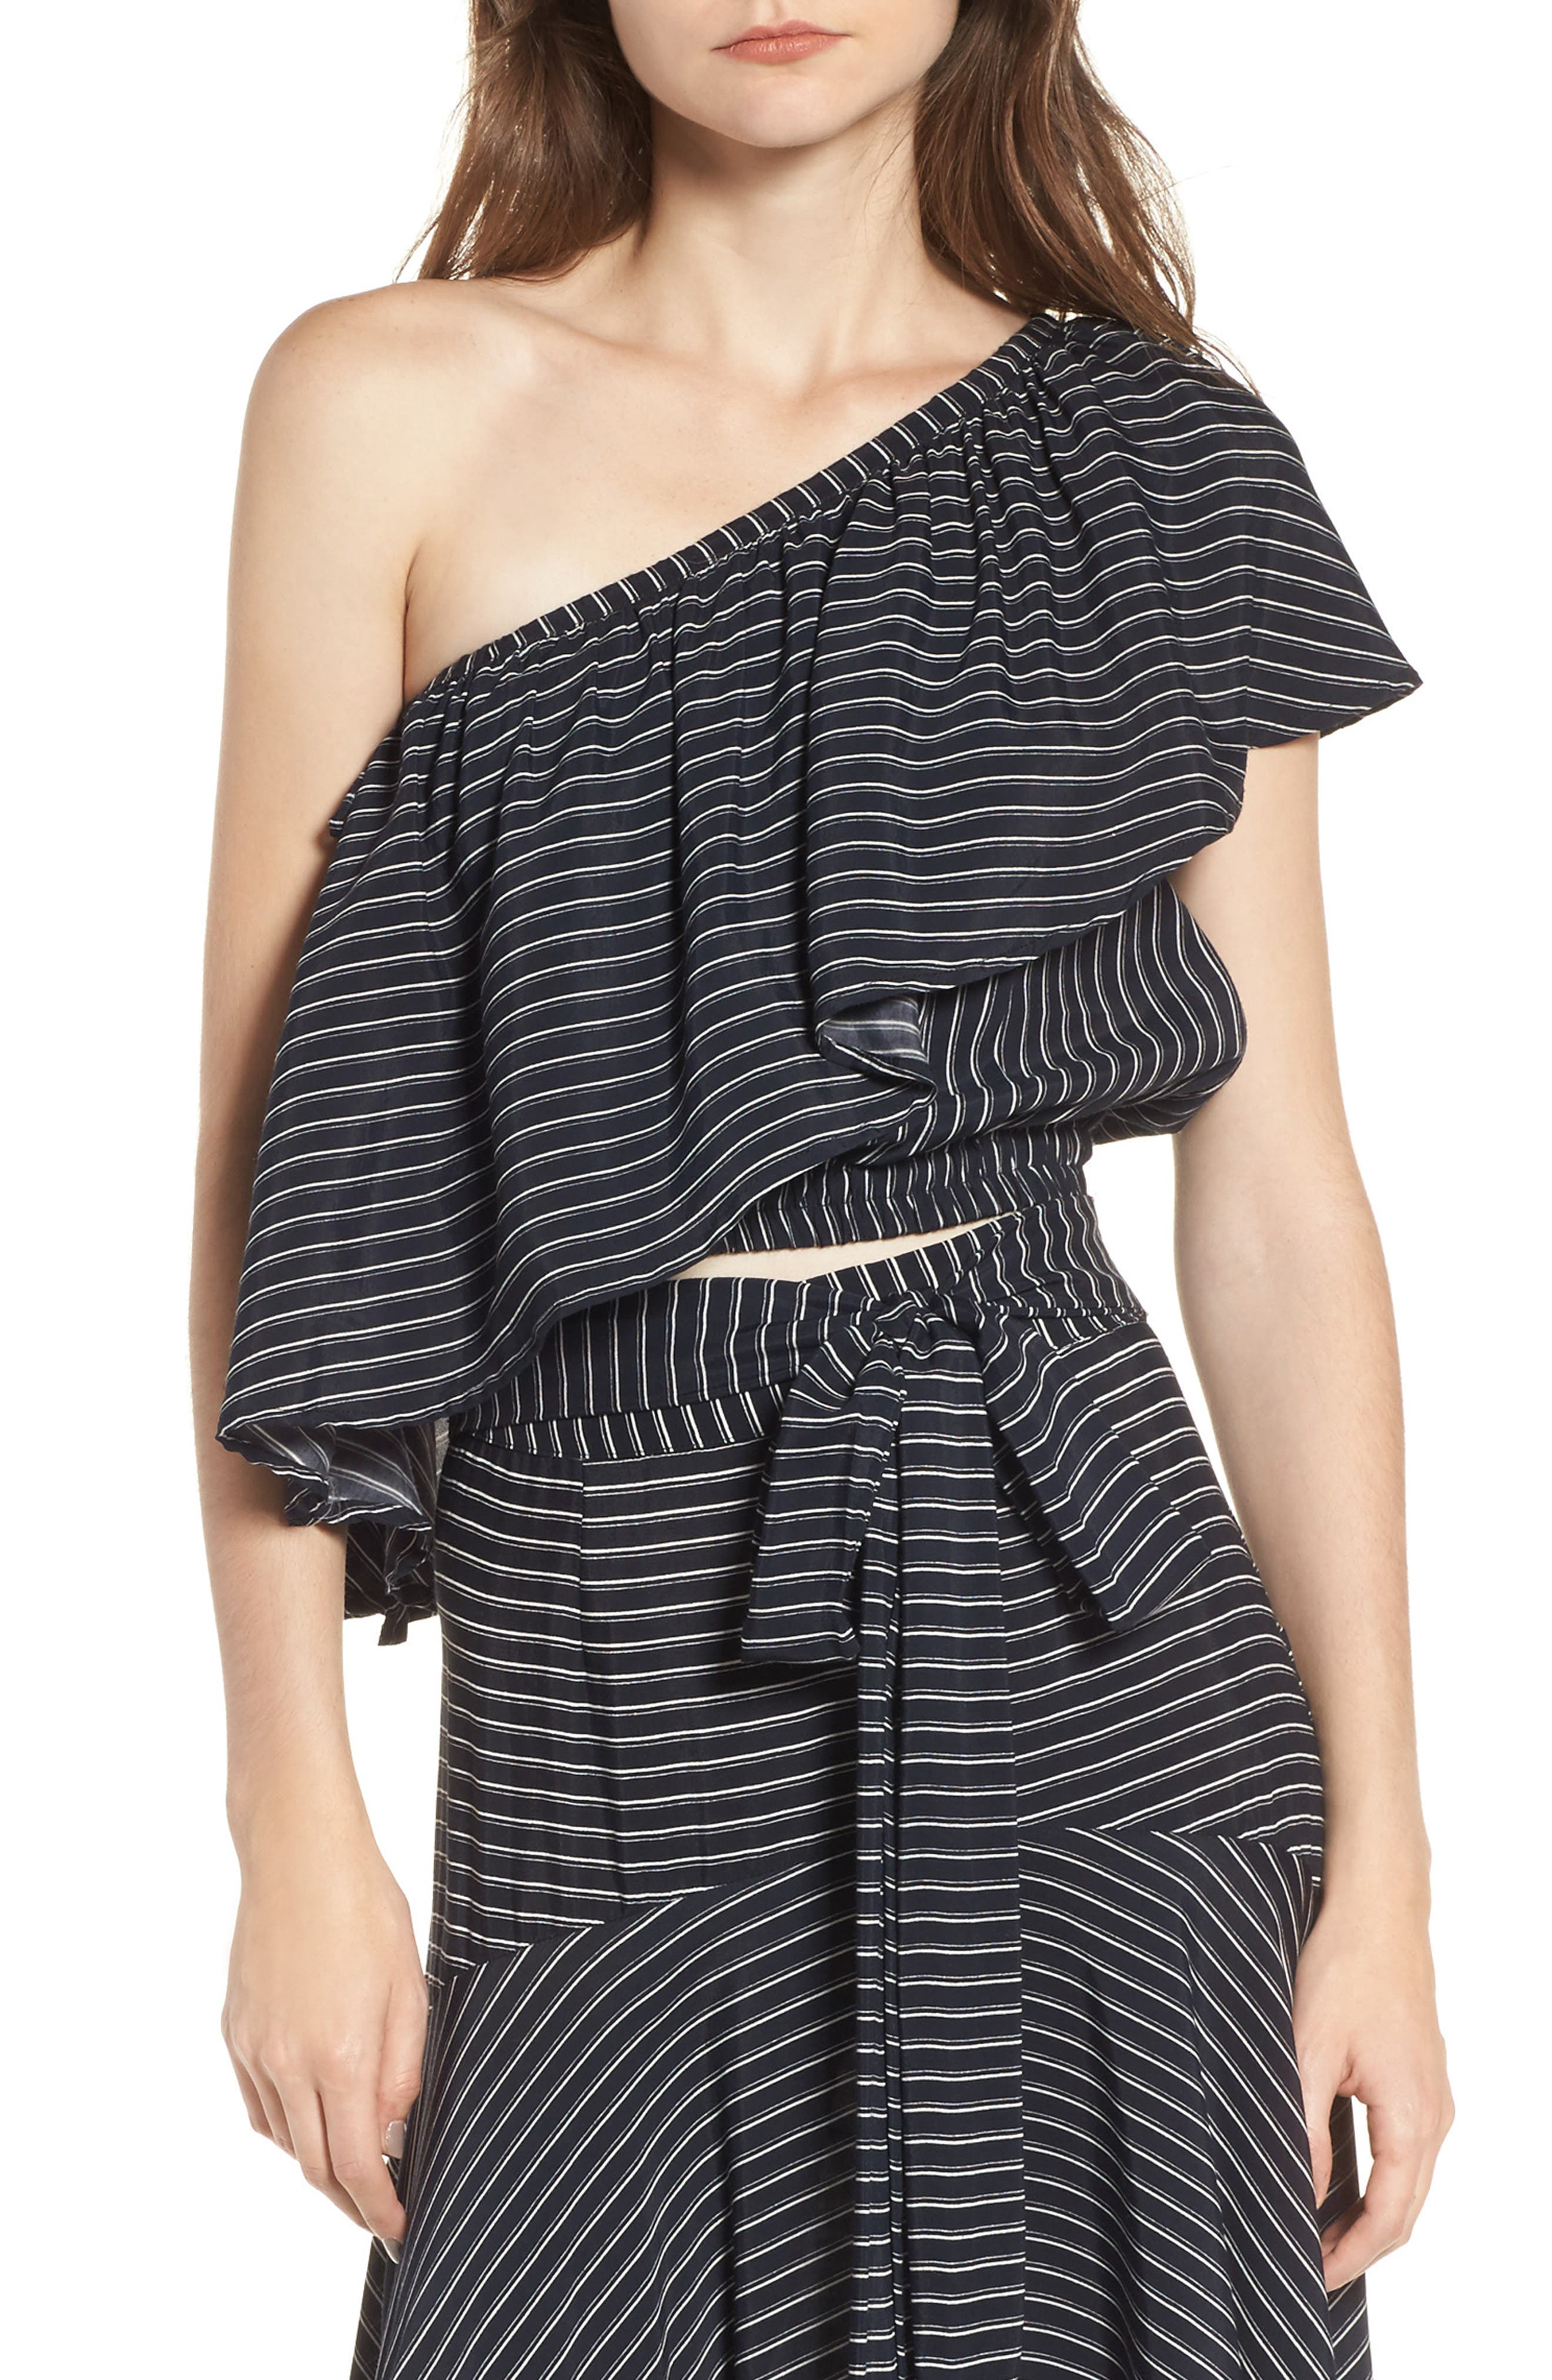 FAITHFULL THE BRAND San Andres One Shoulder Ruffle Top